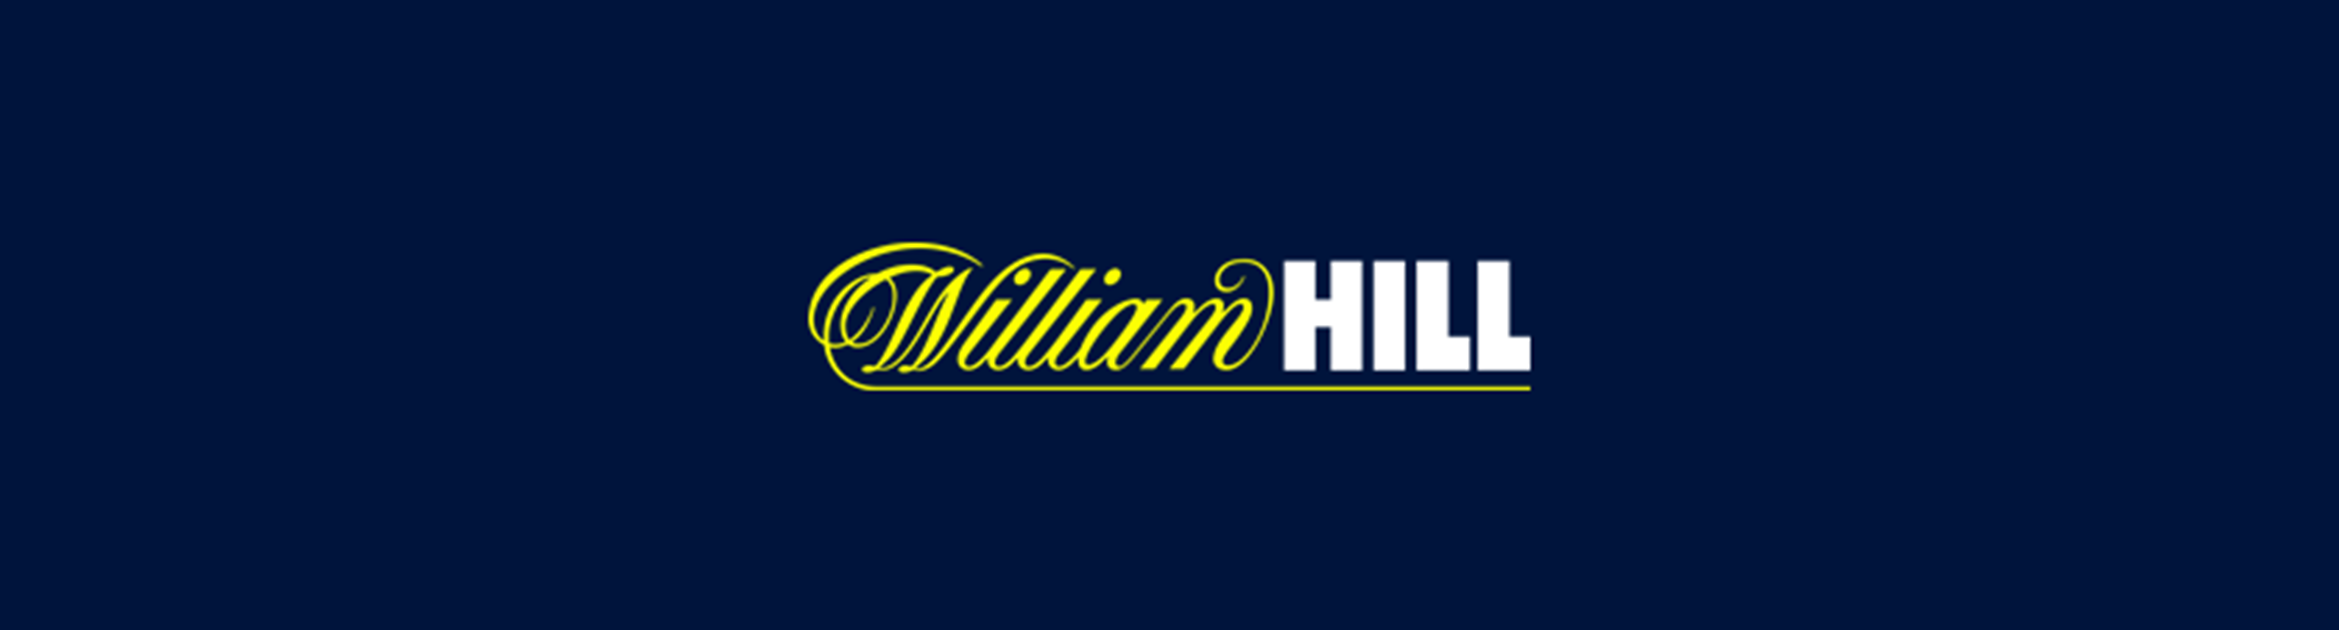 Компания William Hill